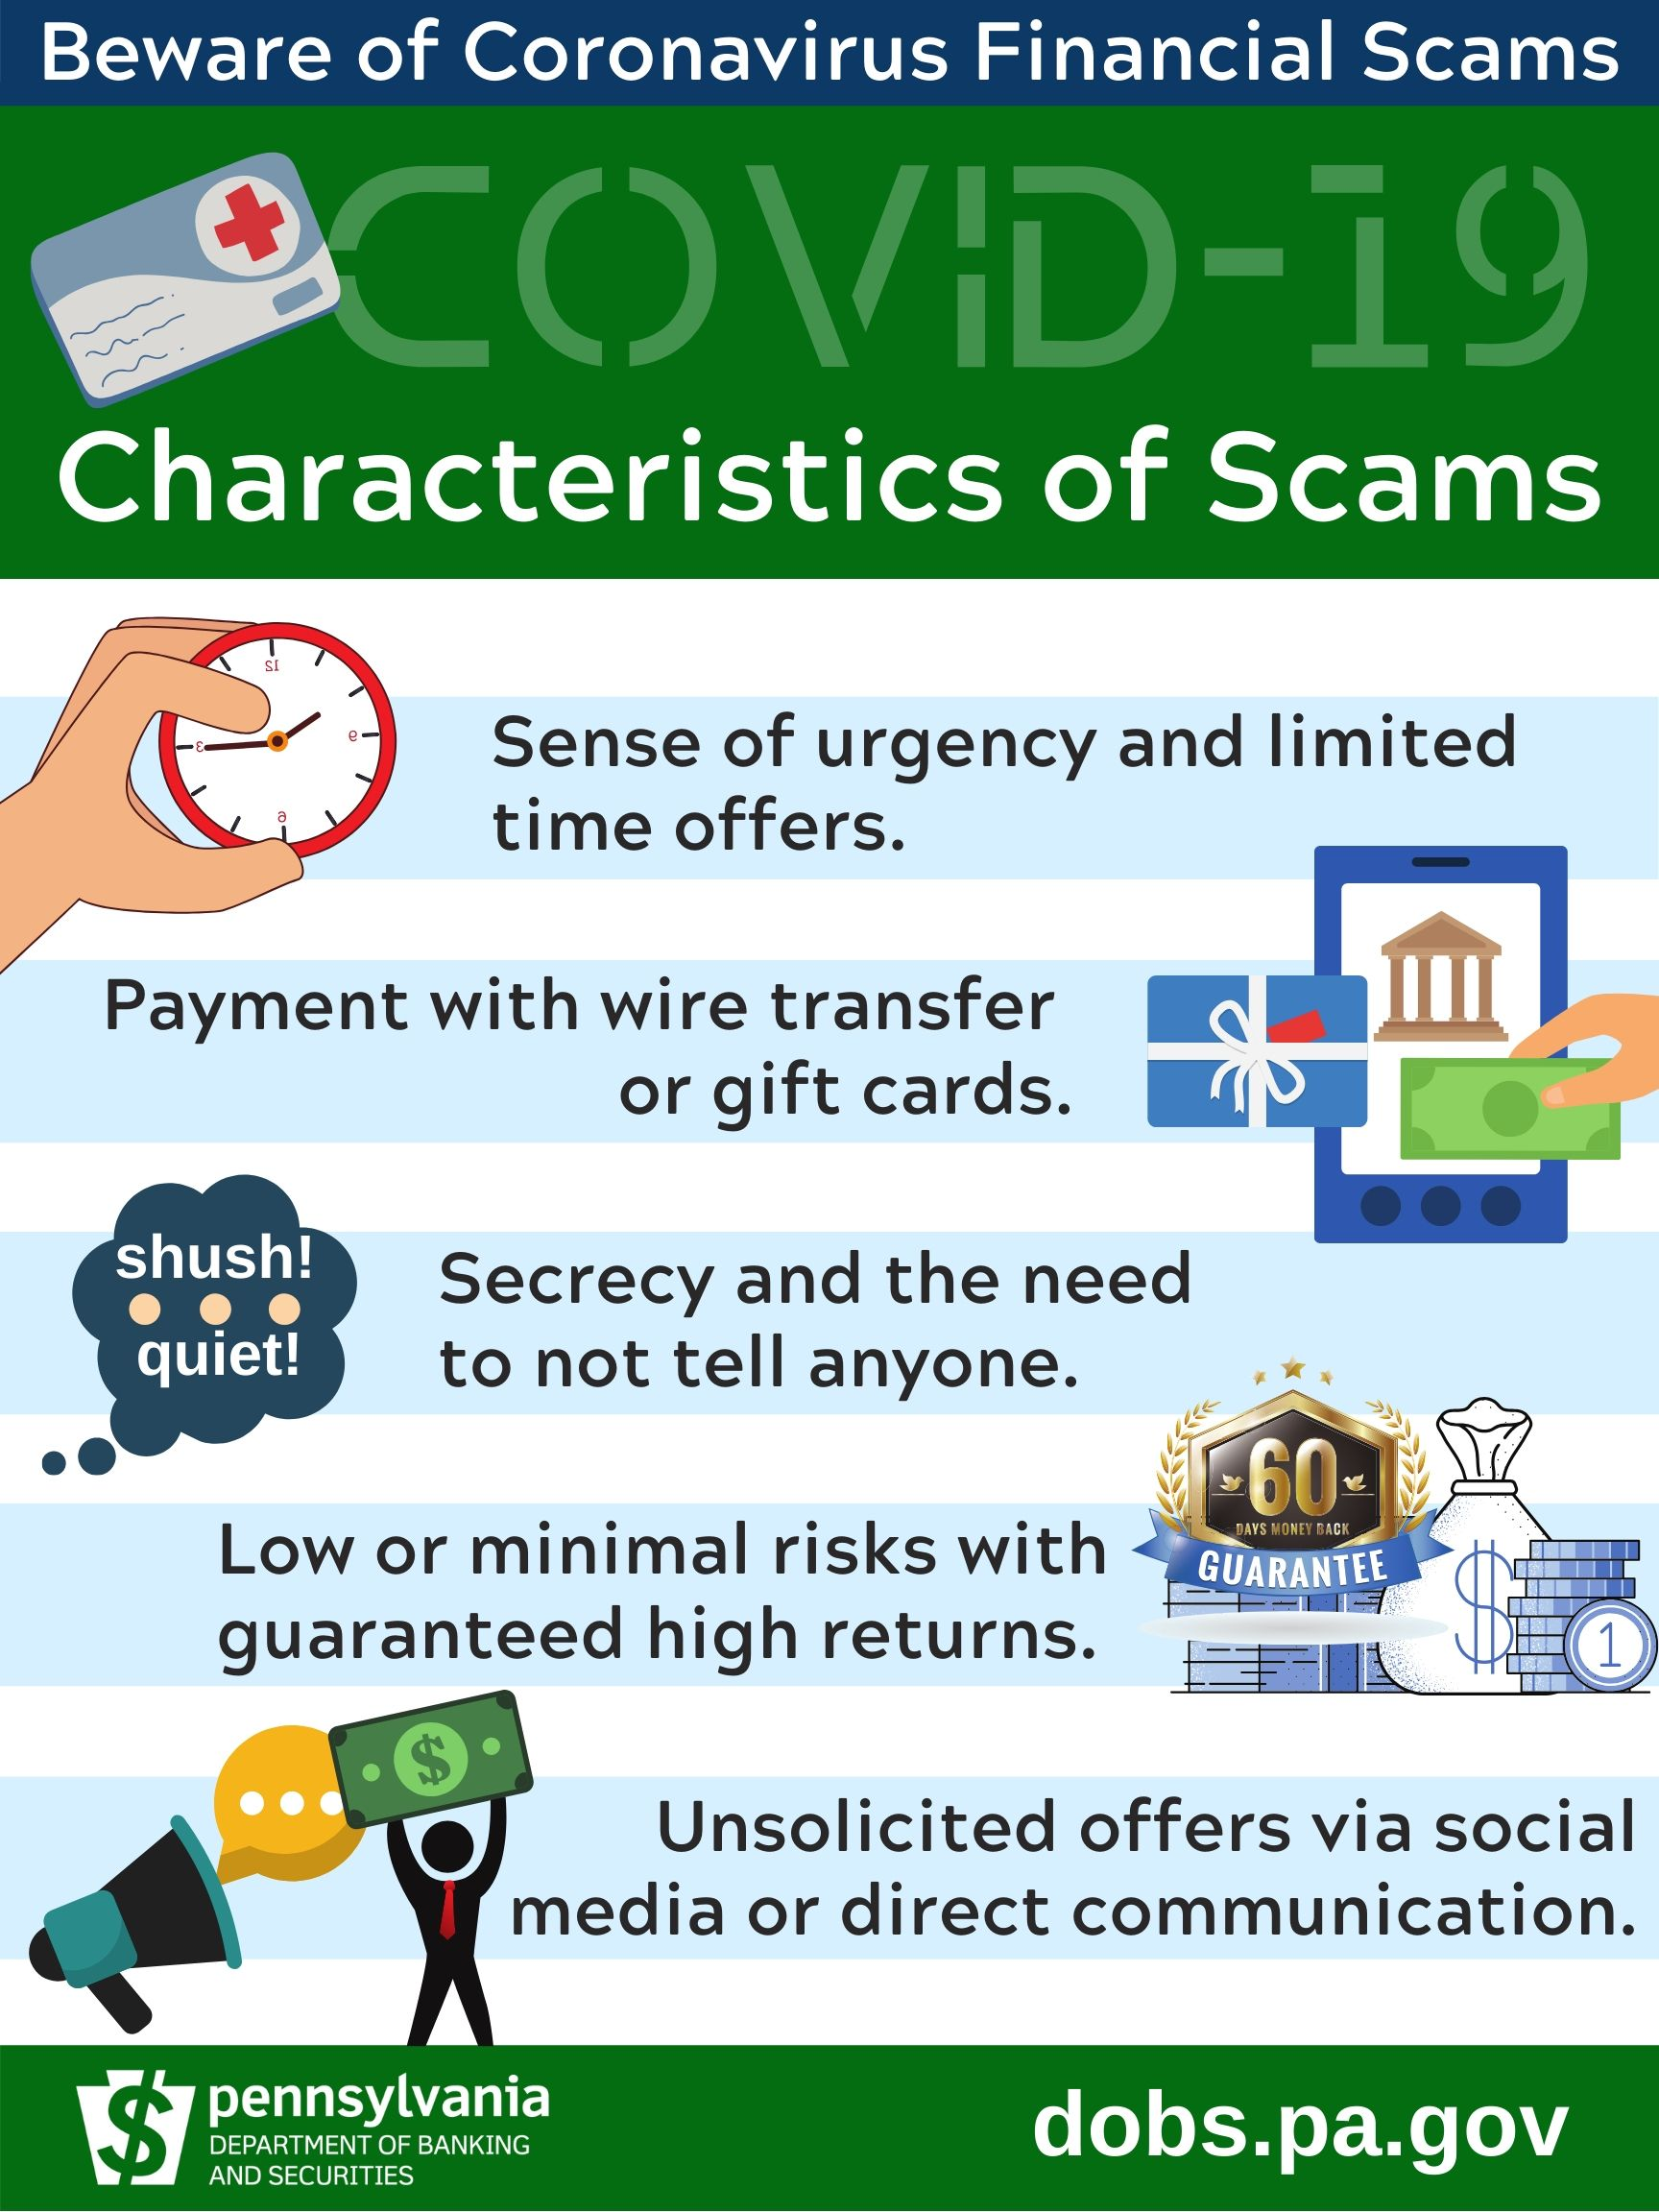 COVID-19 FINANCIAL SCAMS.jpg